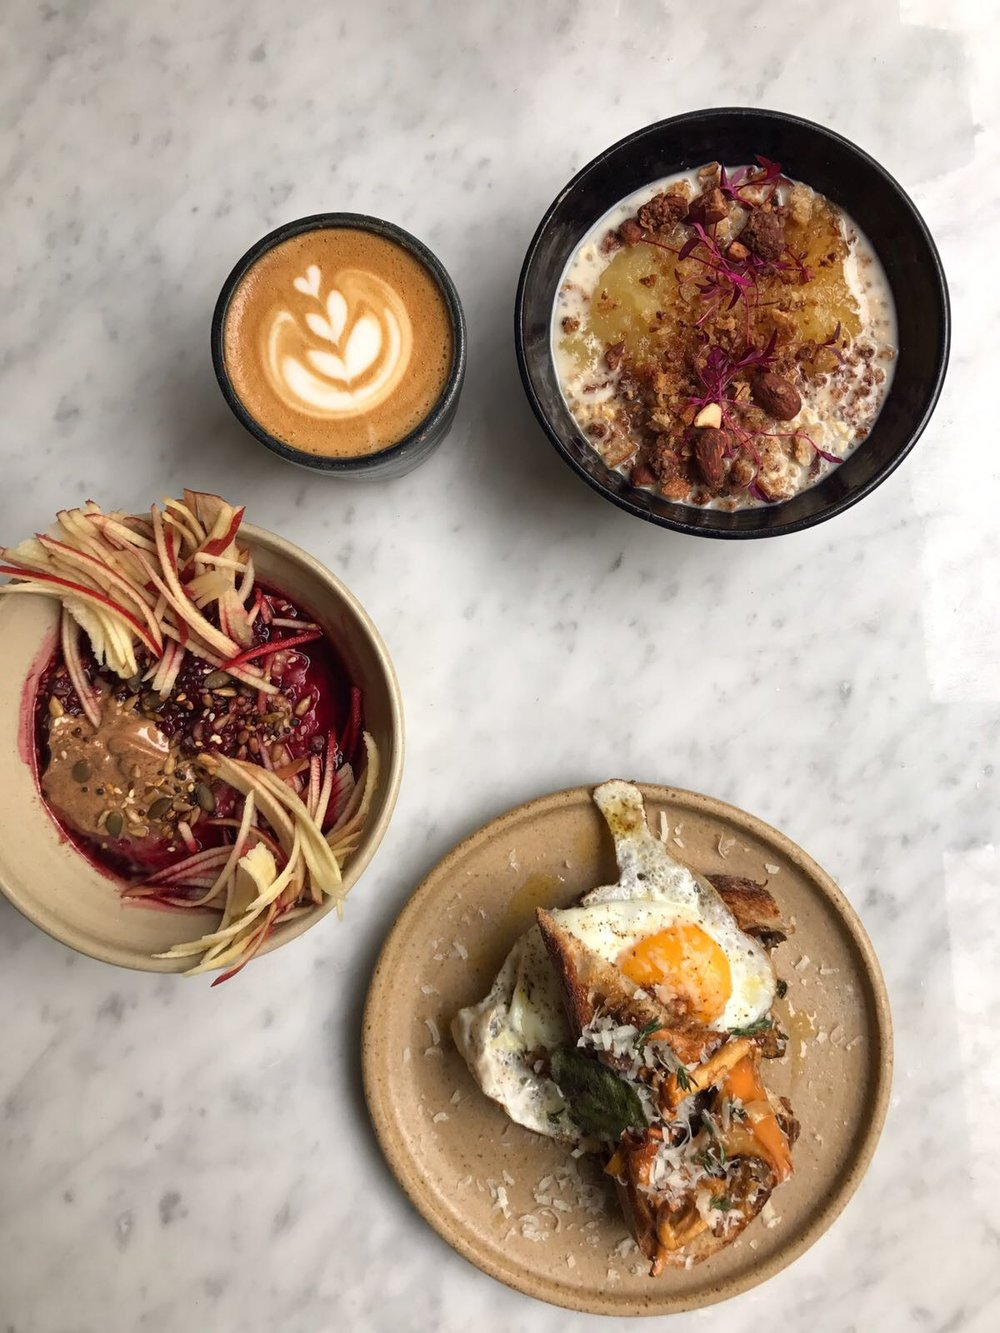 All sorts of delicious options at 26 grains